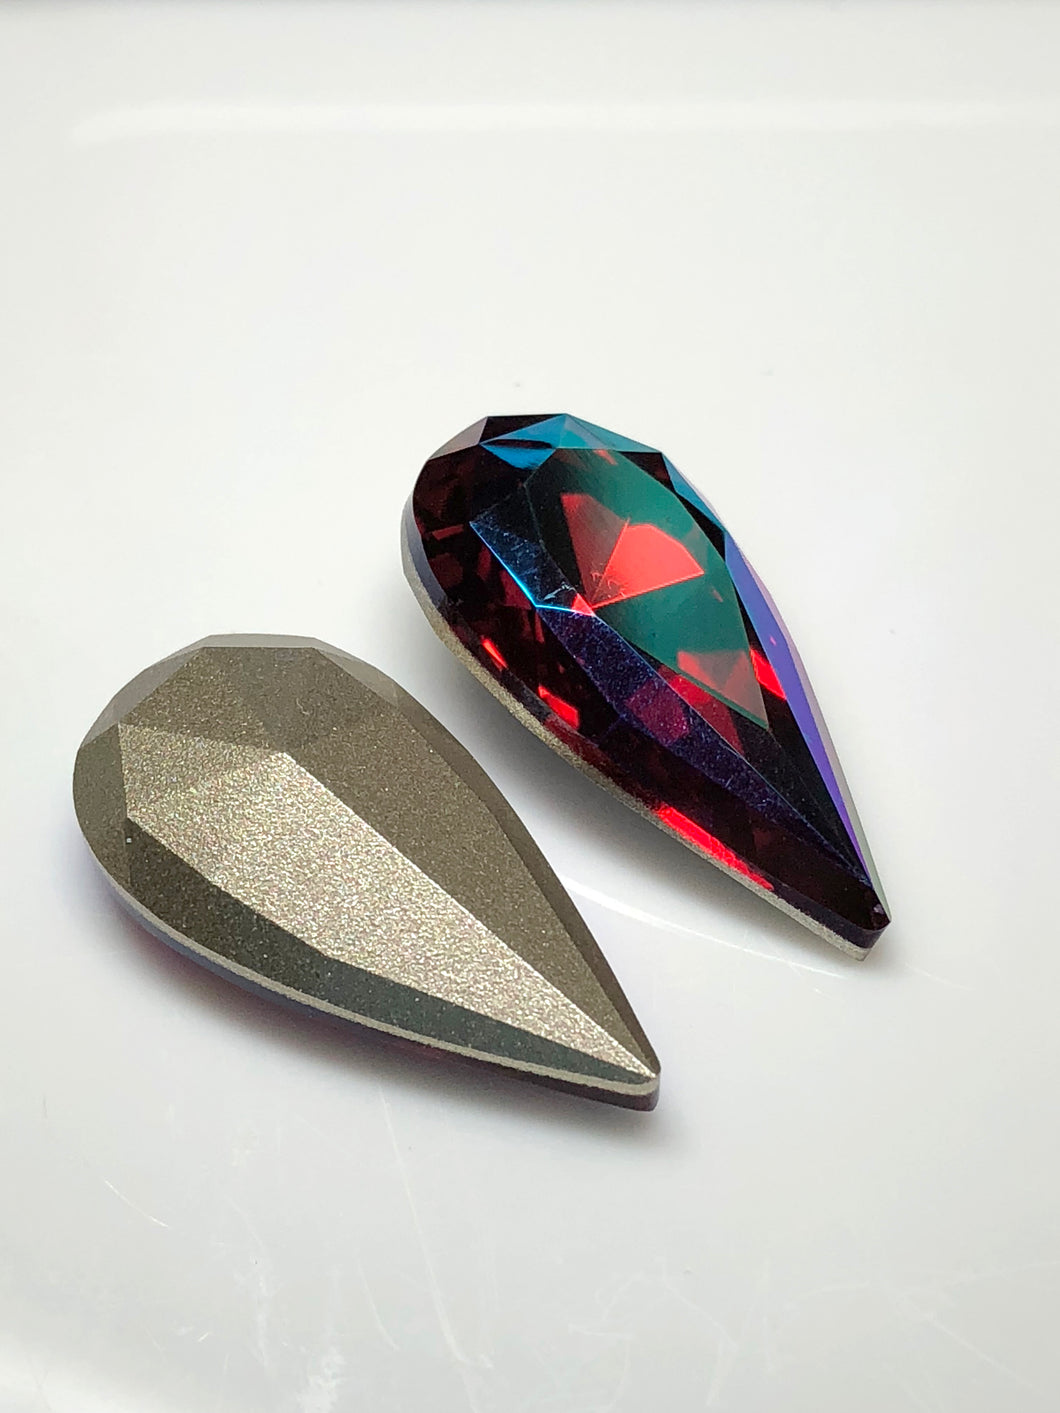 Swarovski 22x11mm Teardrop Scarlet/Glacier Blue 1 pc